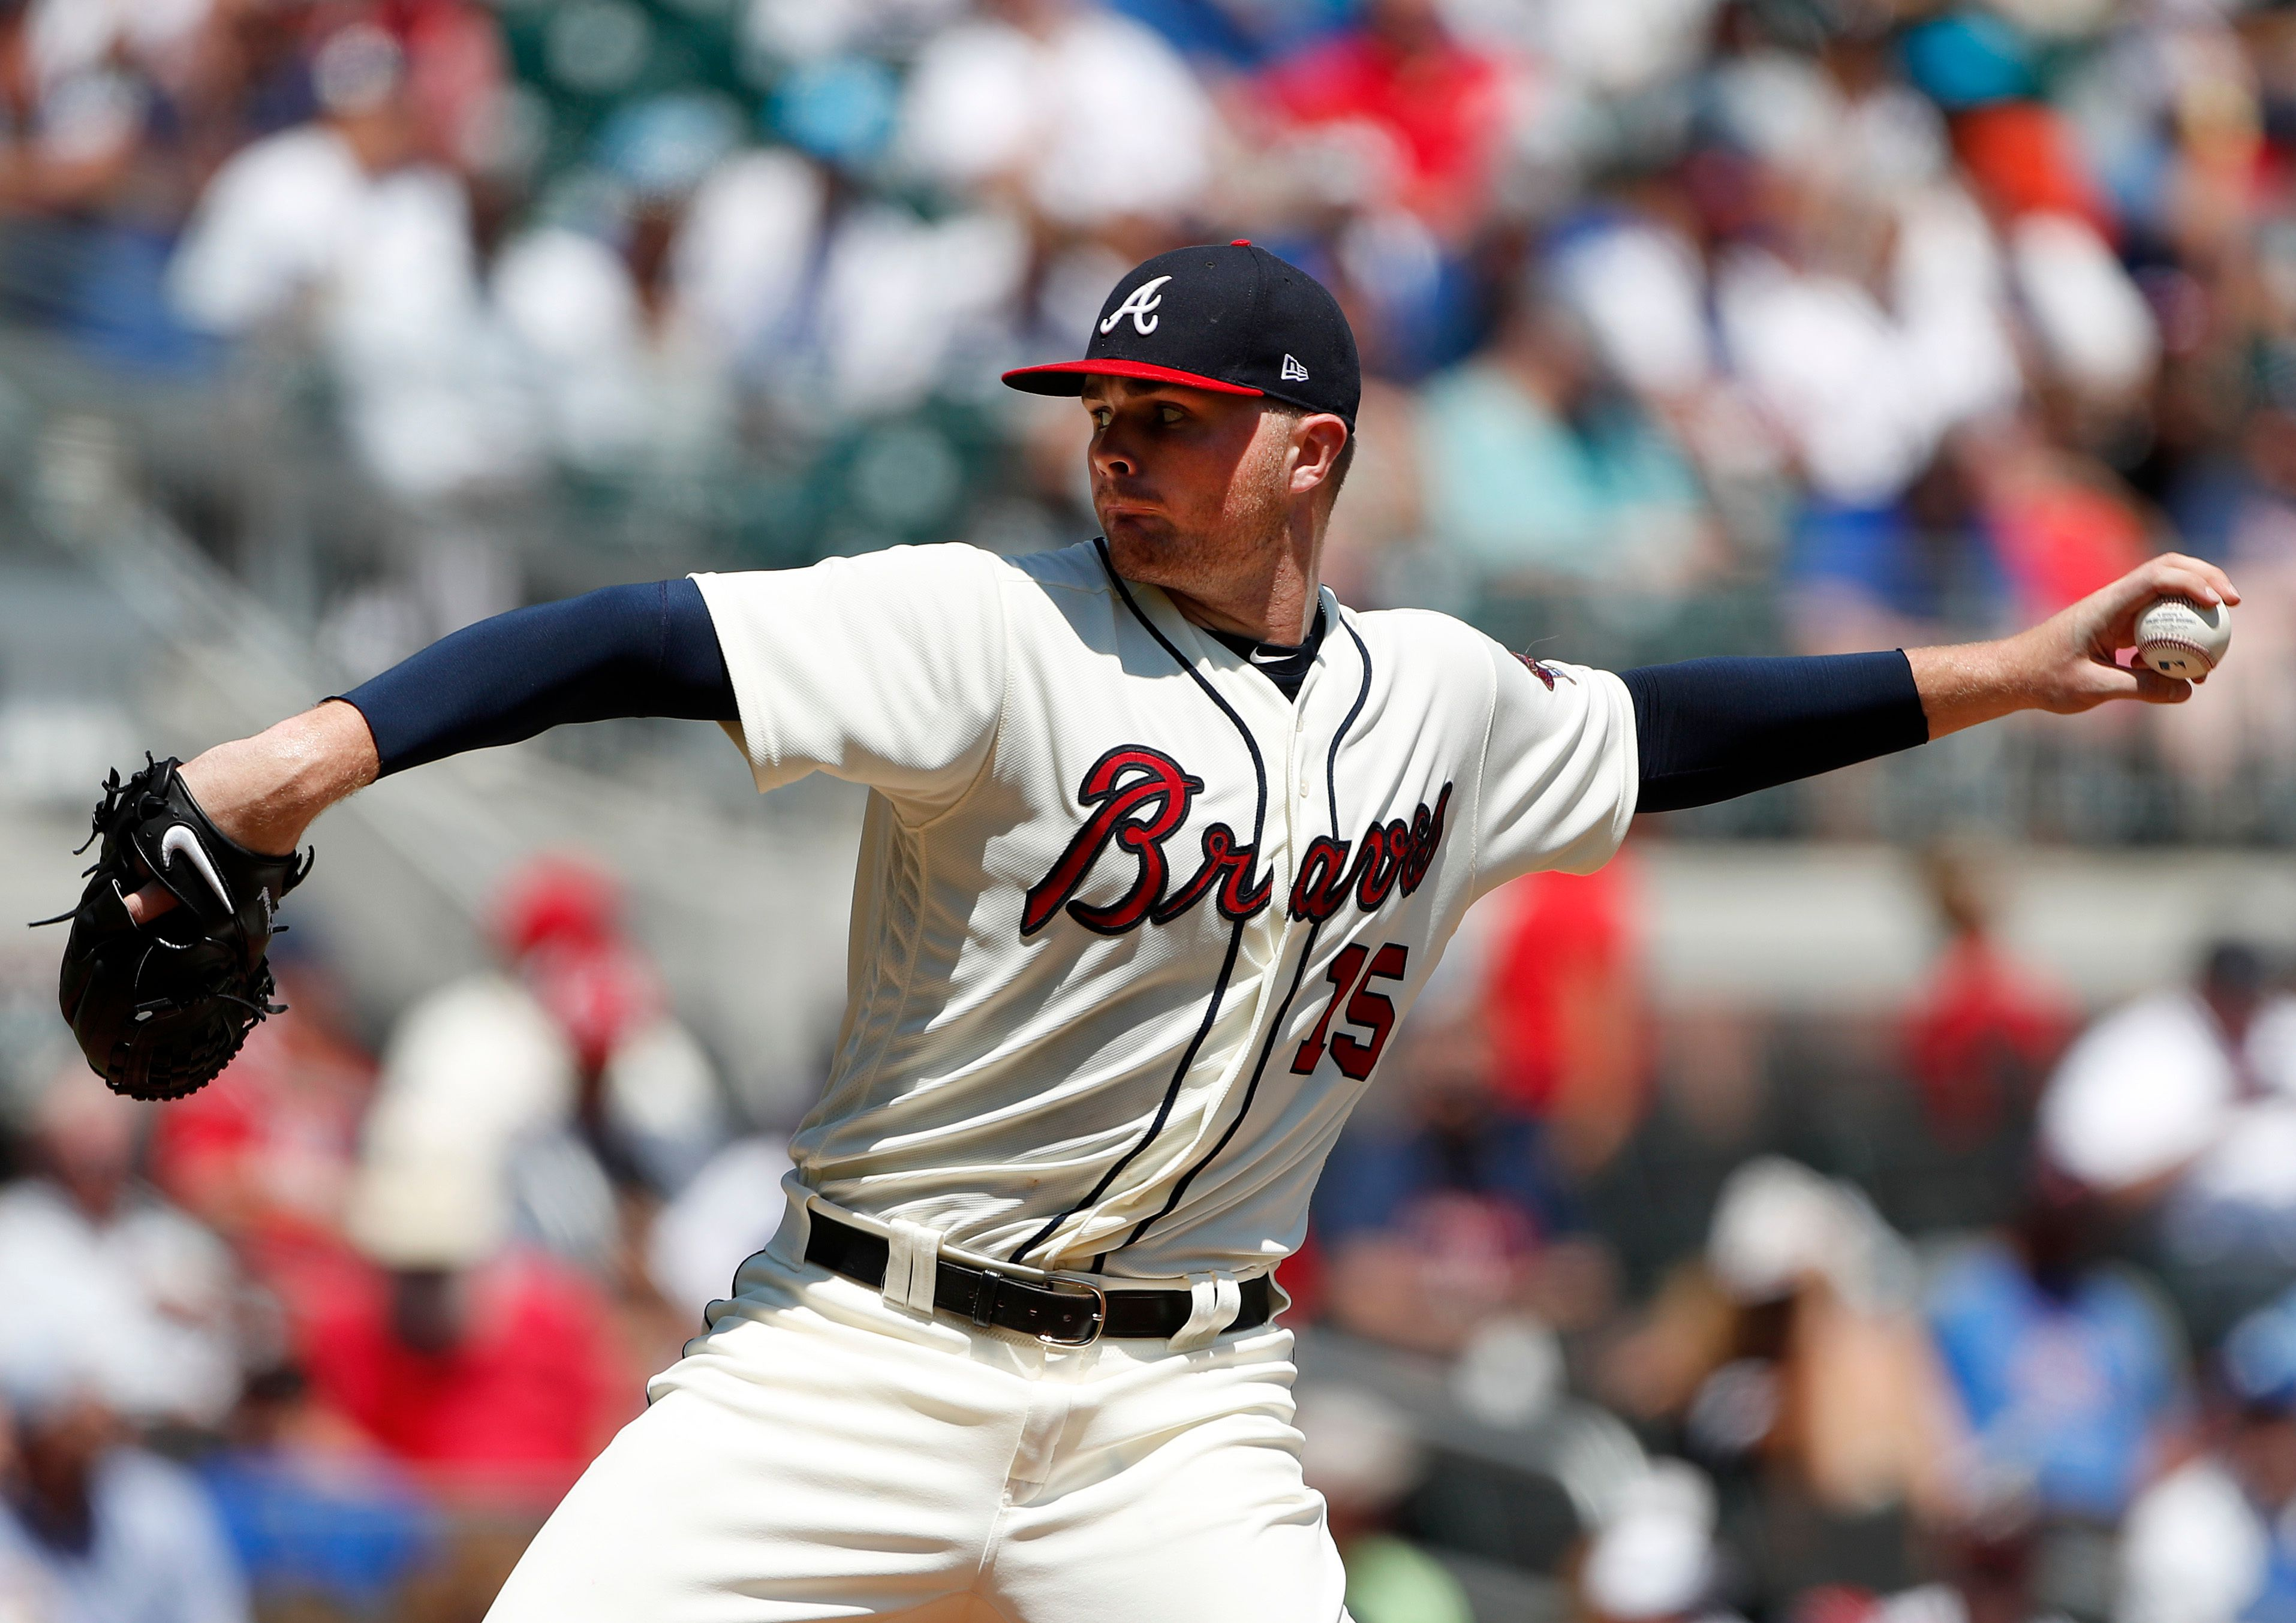 Braves pitcher Sean Newcomb apologizes for offensive tweets